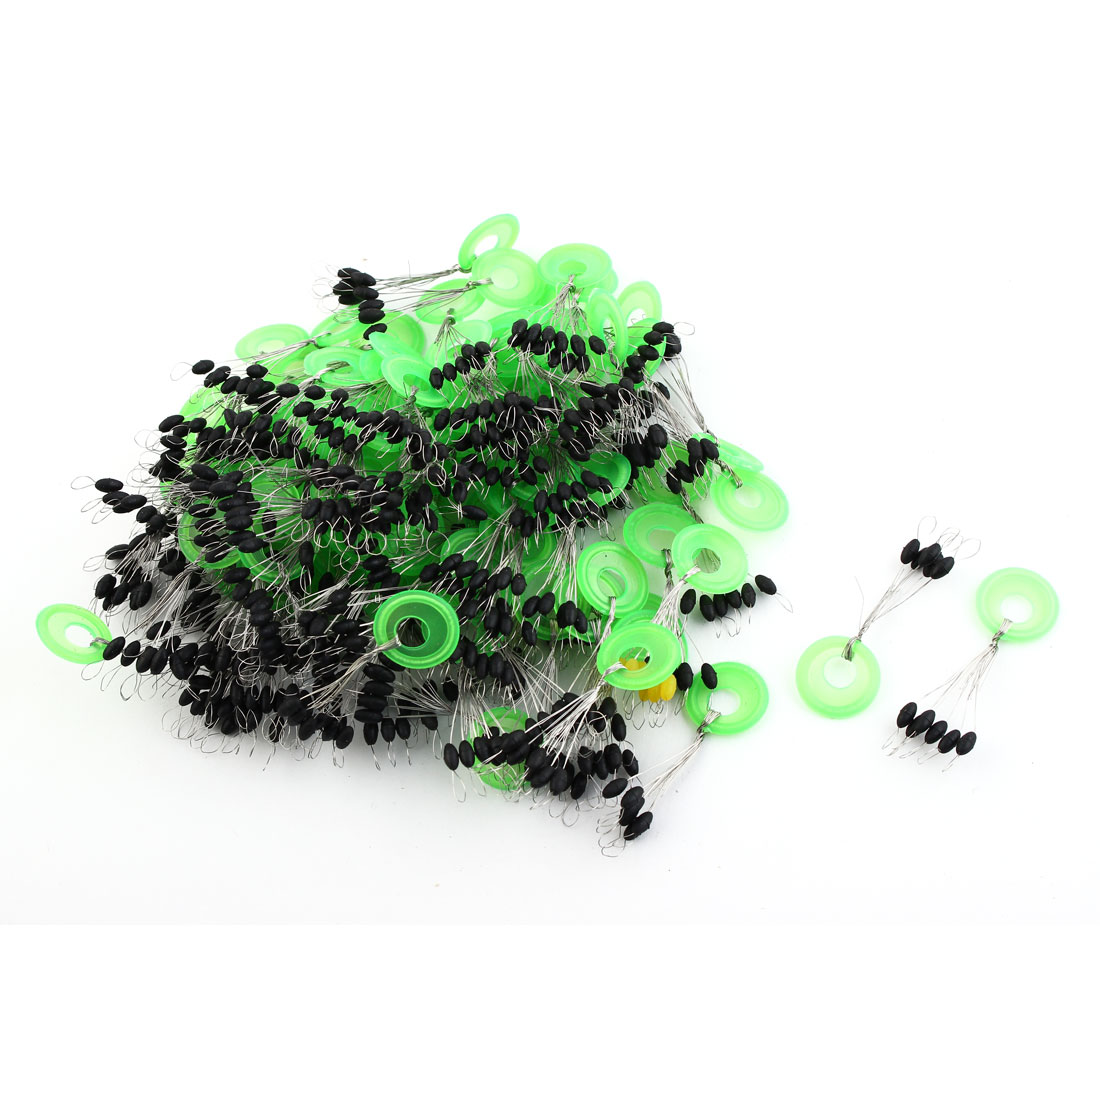 Rubber Oval Shaped Bead Fishing Float Floater Bobber Stopper Fish Tackle Tool Black 100pcs